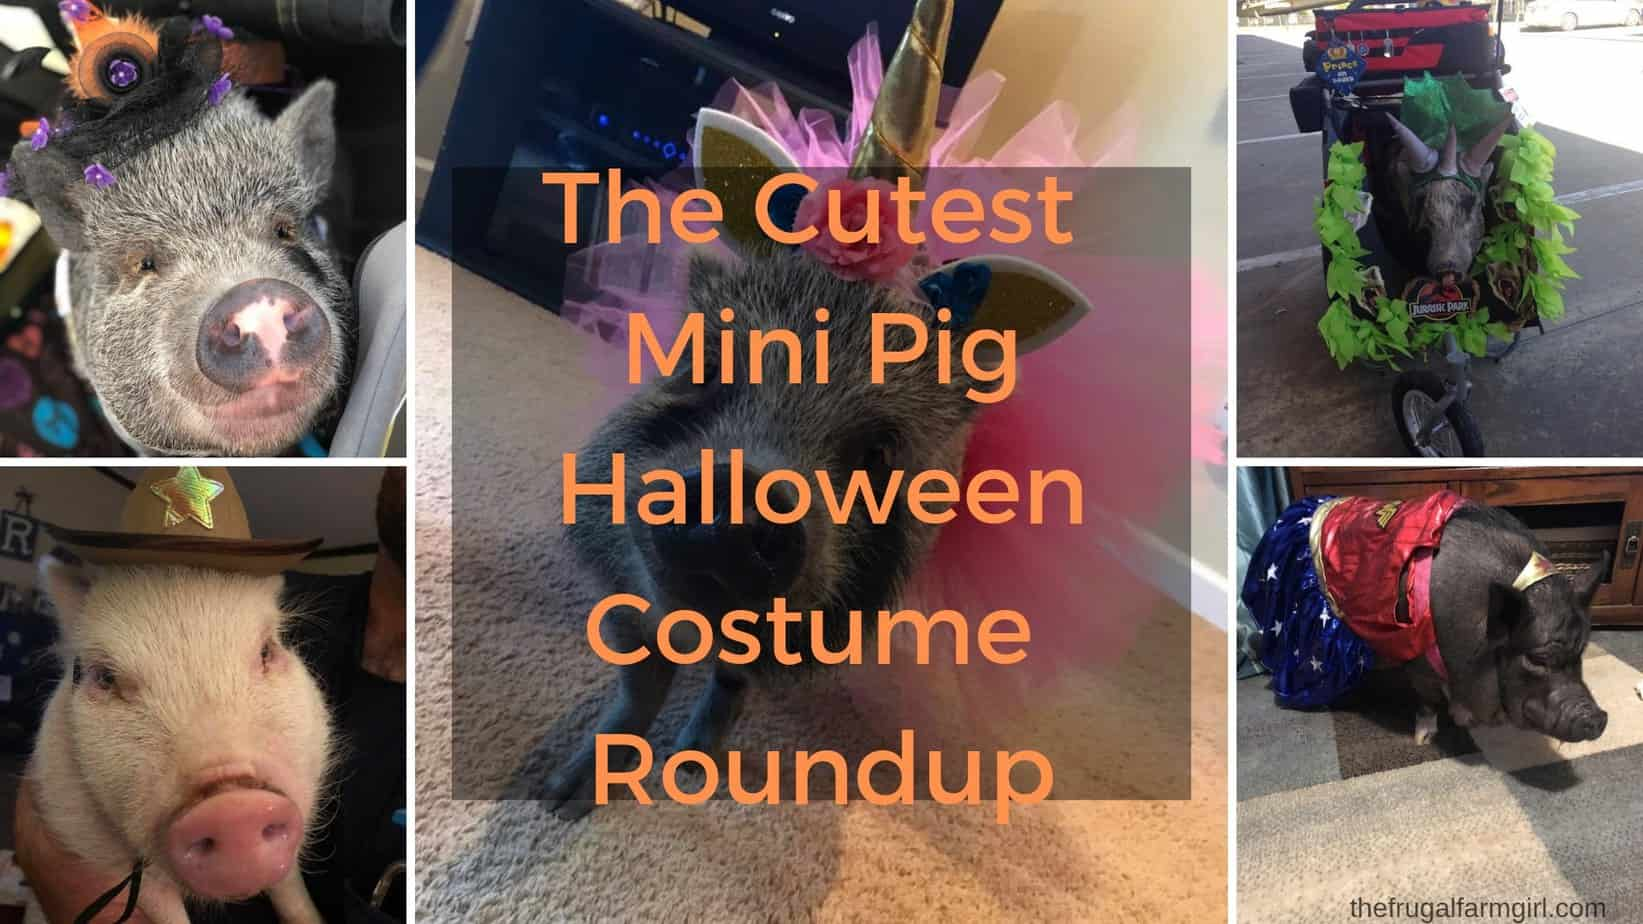 Cutest Mini Pig Halloween Costumes Roundup!